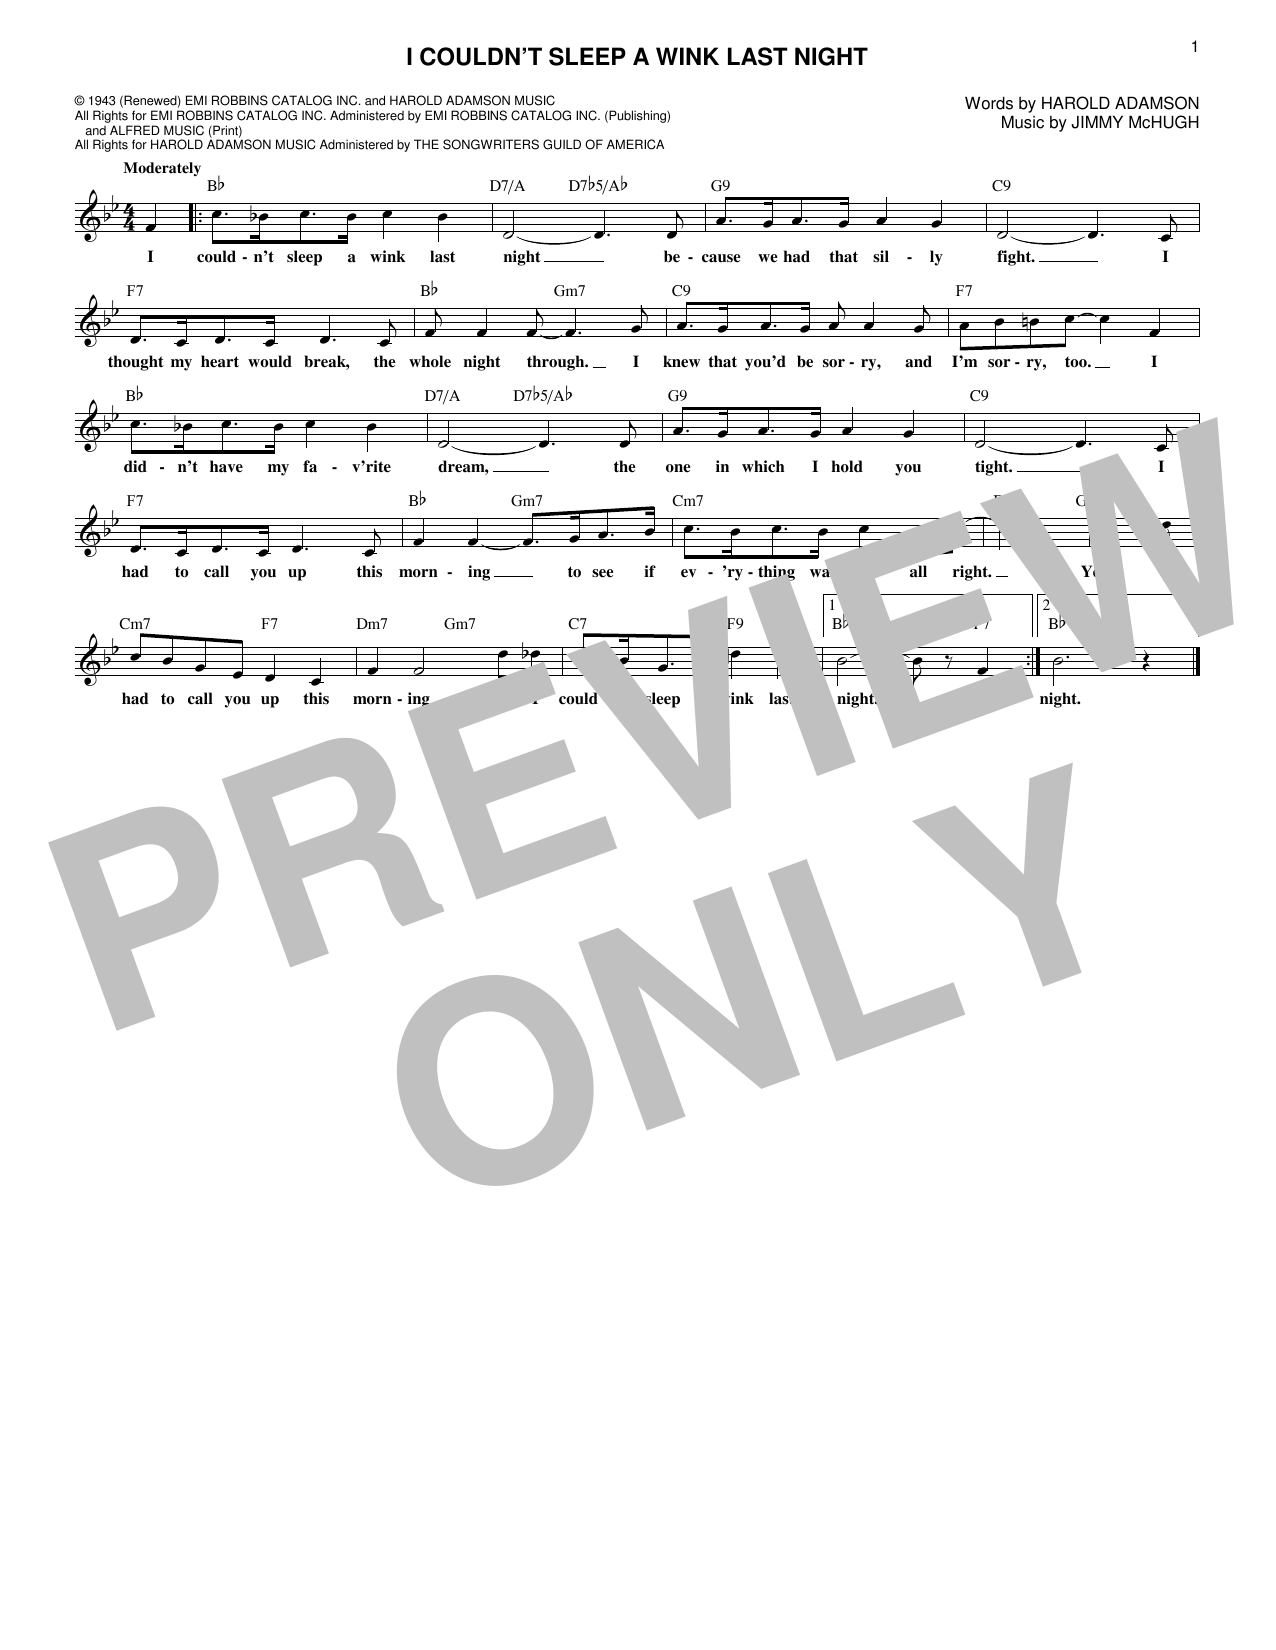 Jimmy McHugh I Couldn't Sleep A Wink Last Night sheet music notes and chords. Download Printable PDF.